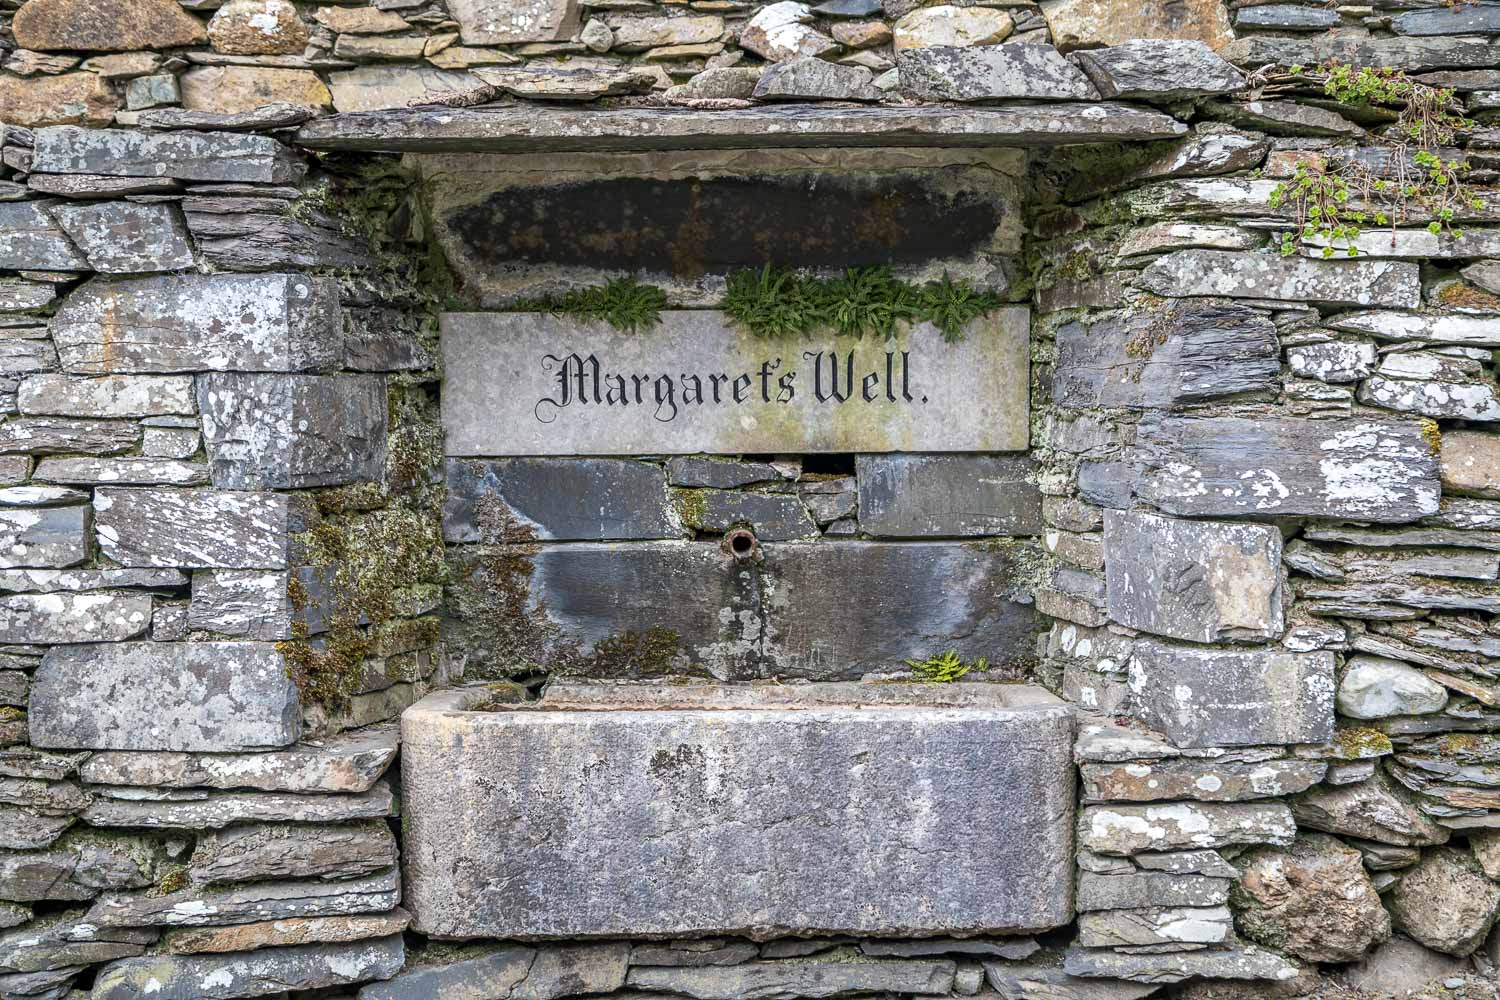 Margaret's Well, Troutbeck